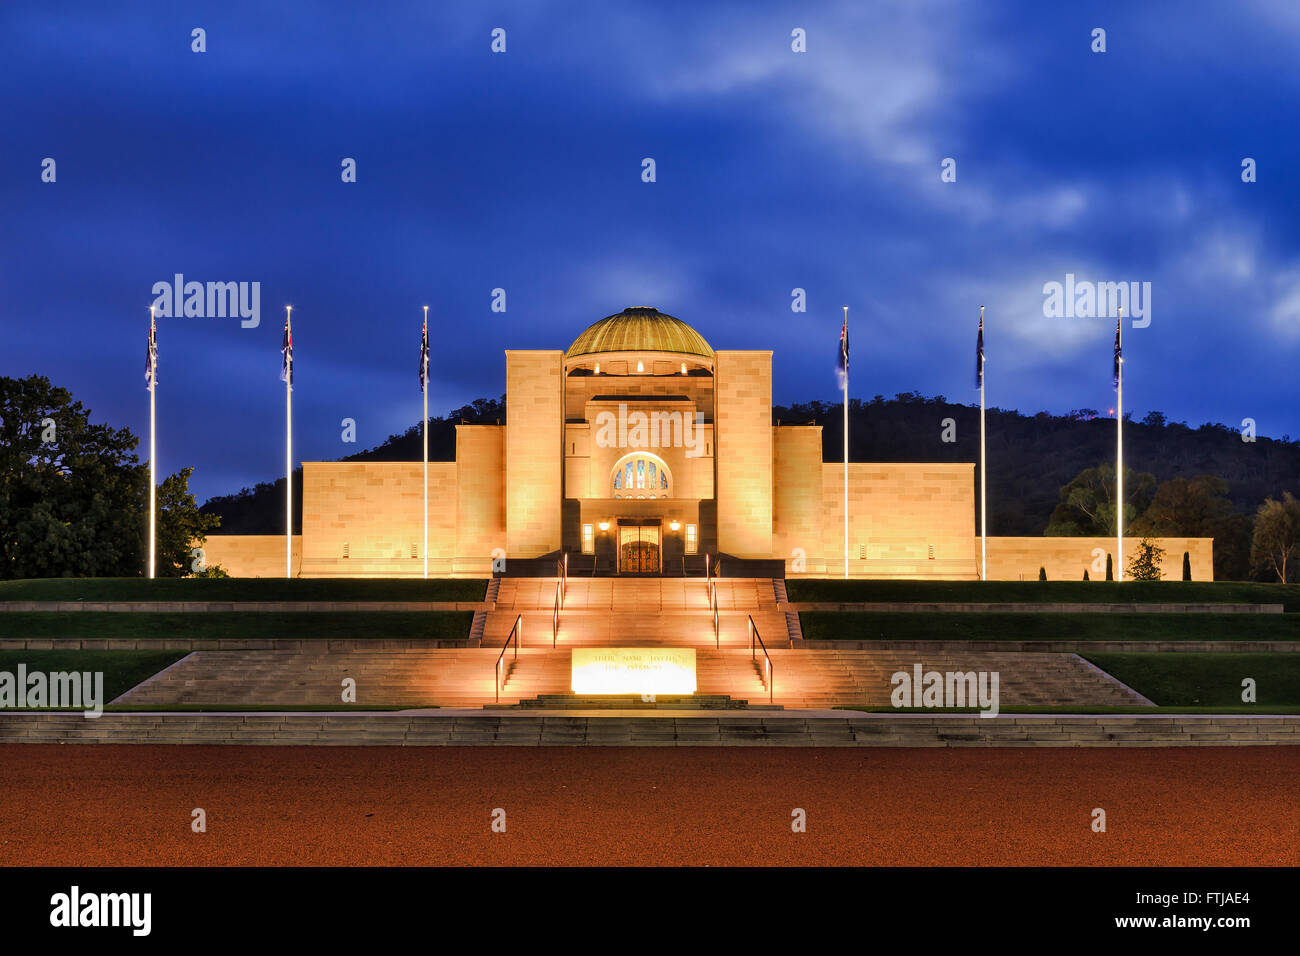 Facade and entrance to Australian Canberra War Memorial complex at sunrise. Historic museum is free for public and - Stock Image